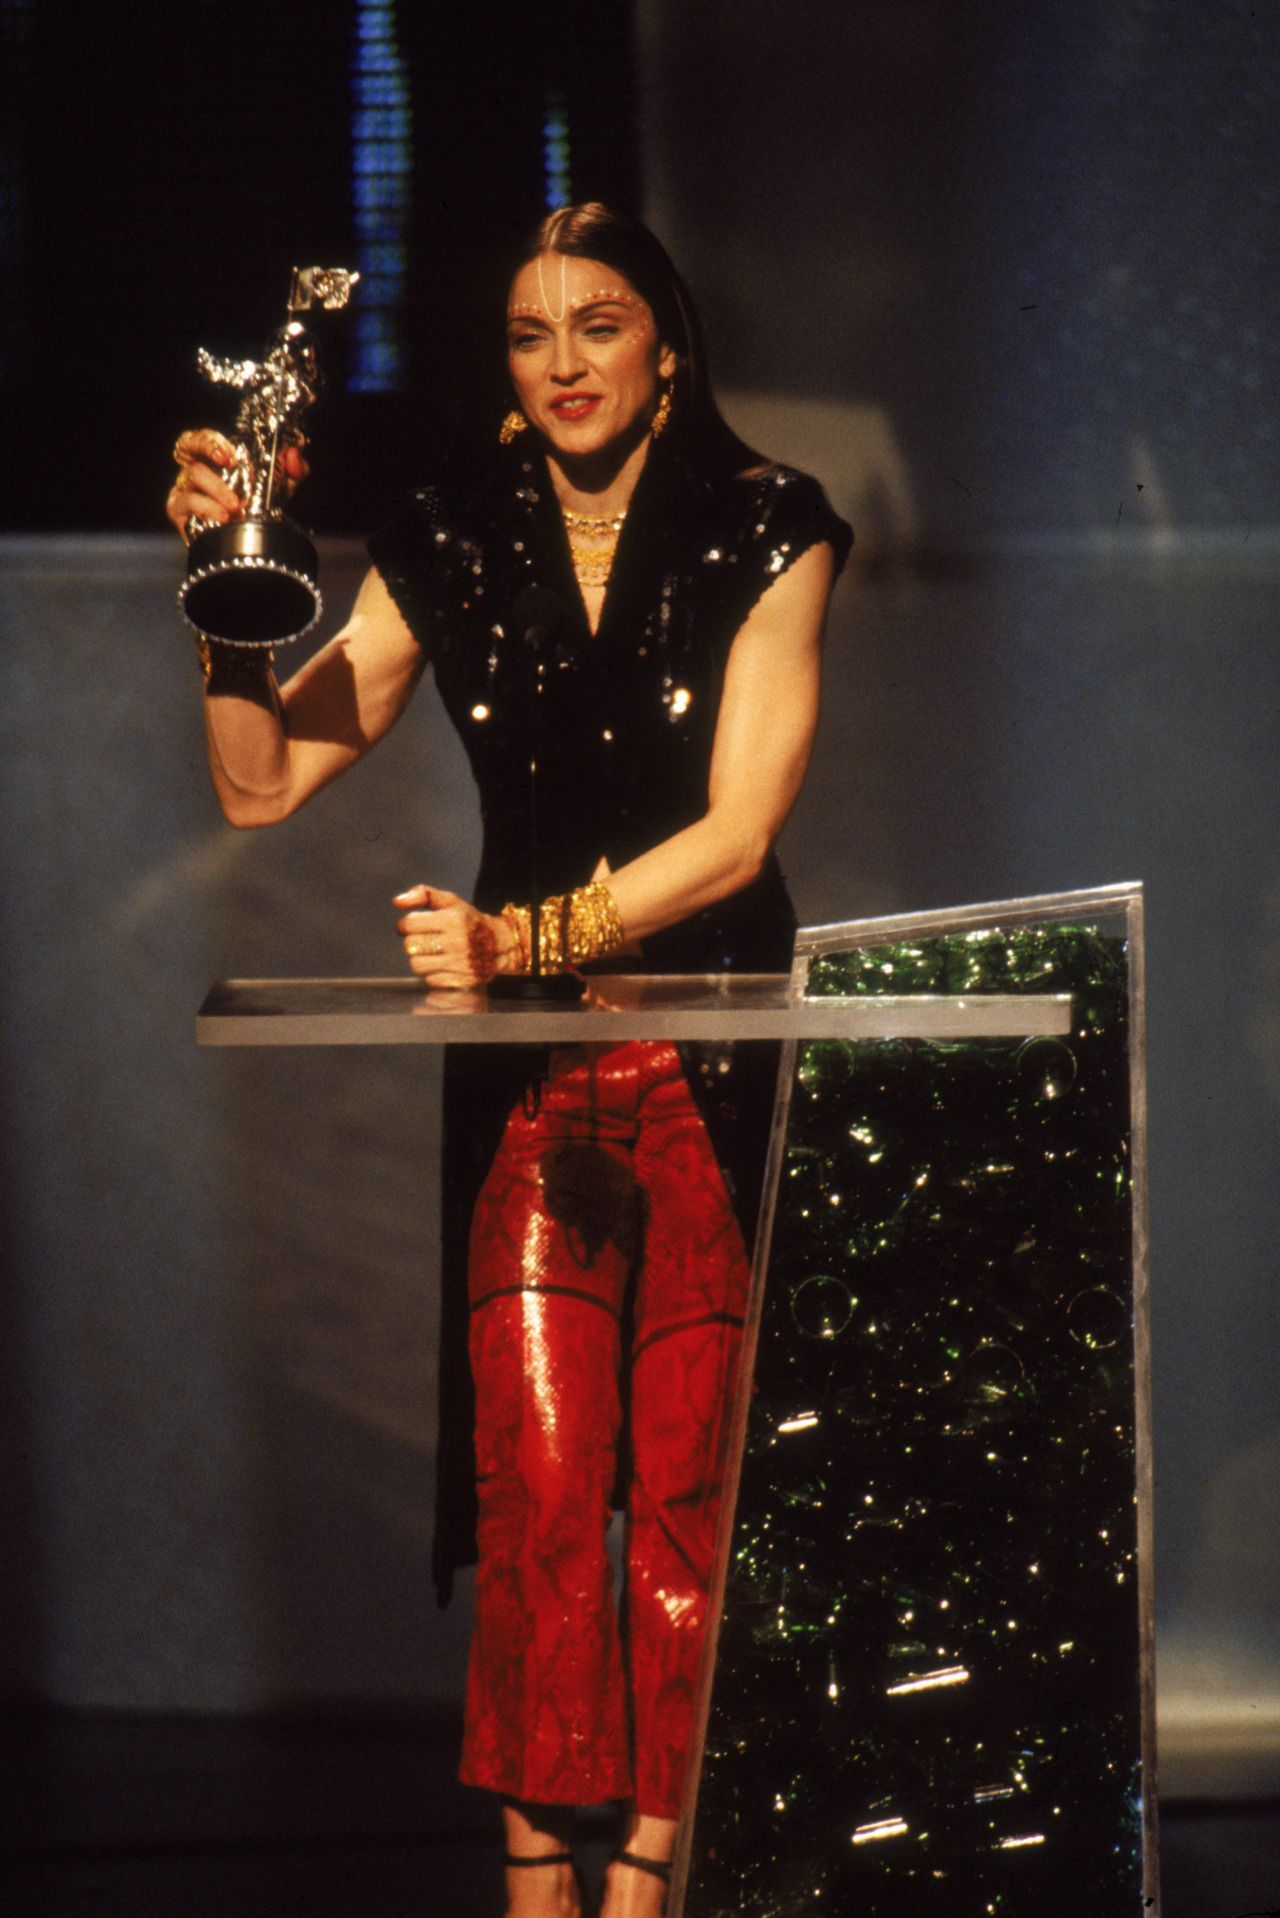 The 21 Artists Who Have Won the Most VMAs Madonna, Best